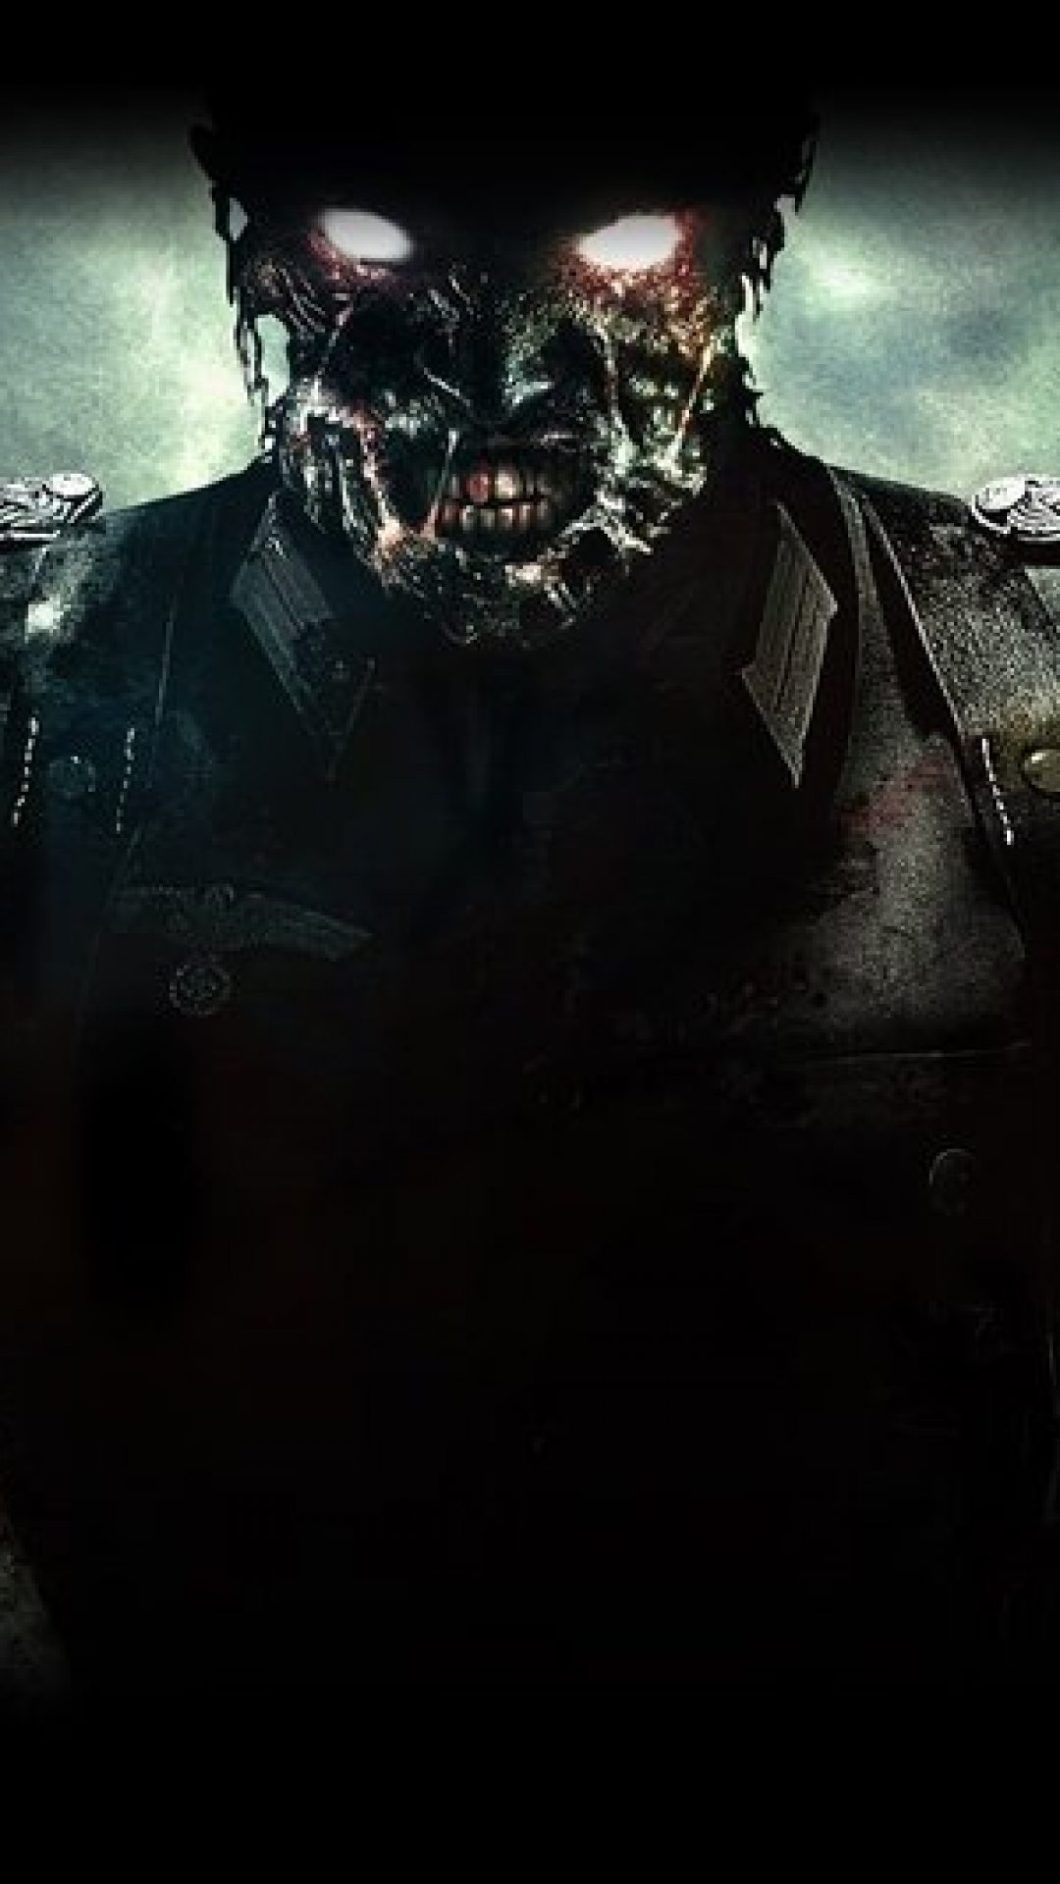 Zombie Wallpaper Iphone Posted By Ethan Peltier